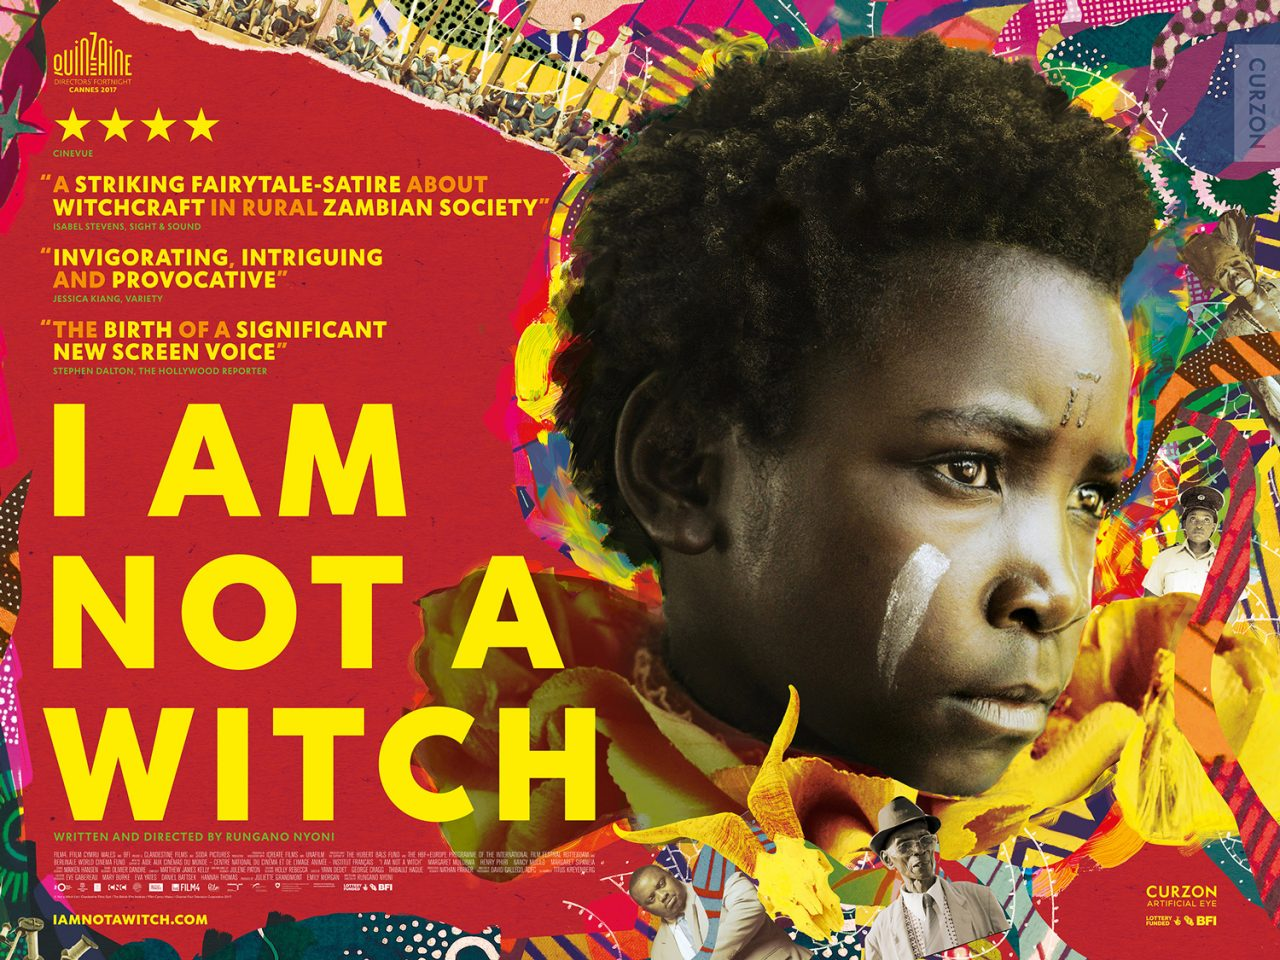 i-am-not-a-witch-poster_web-1280x960.jpg